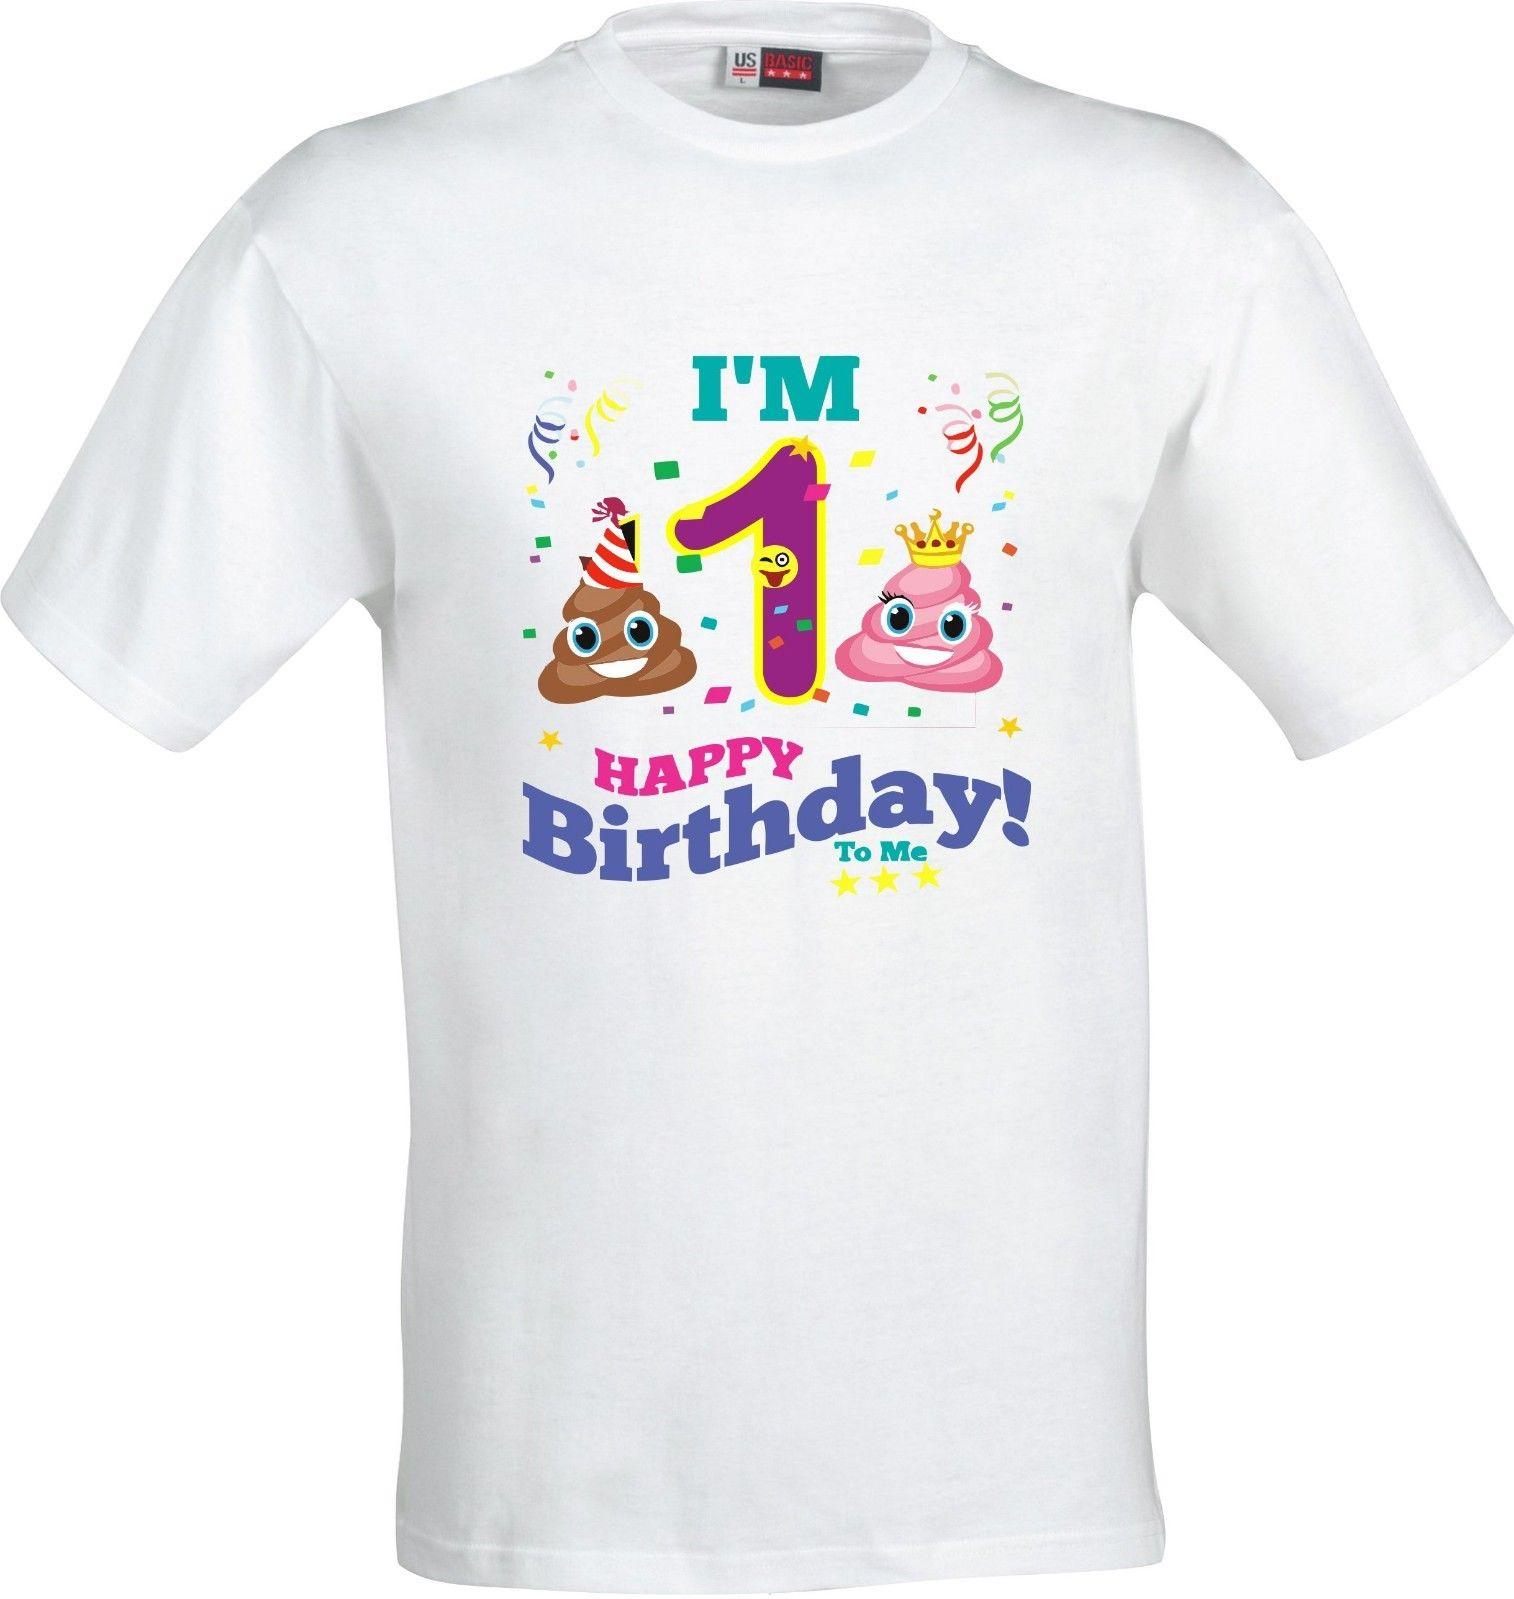 HAPPY BIRTHDAY POOP EMOJI FULL COLOR SUBLIMATION T SHIRT Funny Unisex Casual Tee Gift Coolest Shirt Shirts With Designs From Trendsspace 1296